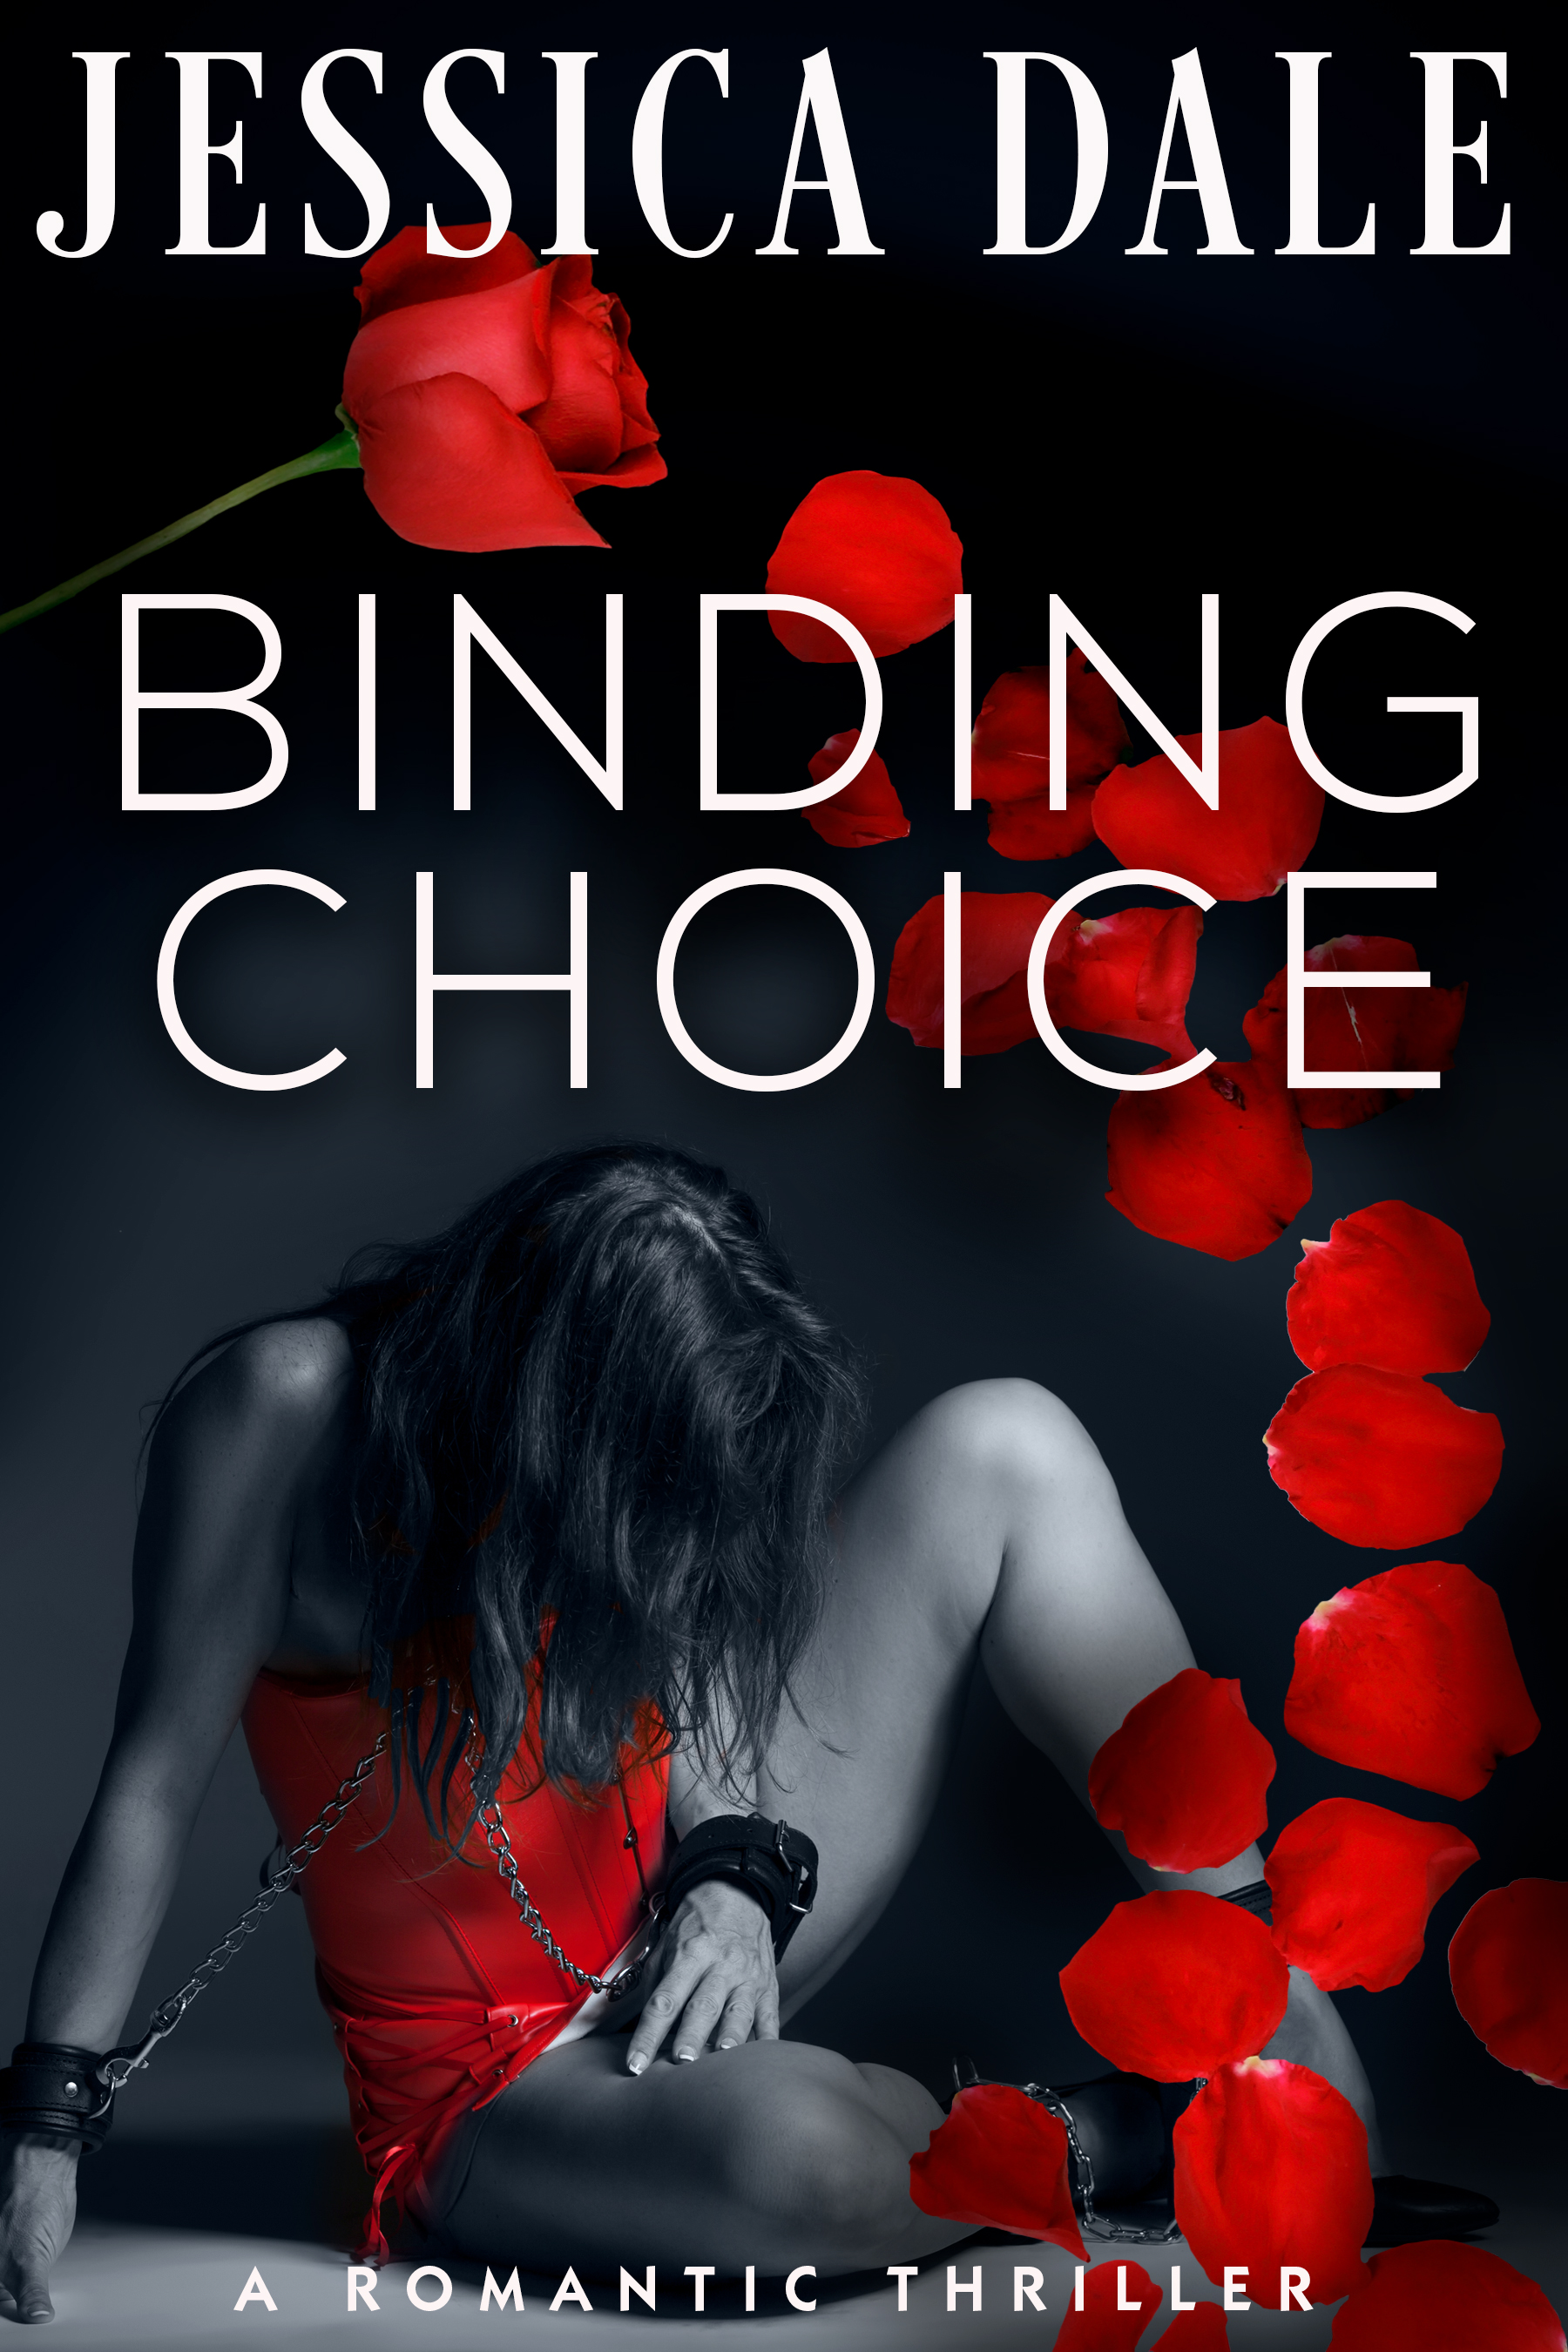 Binding Choice book title